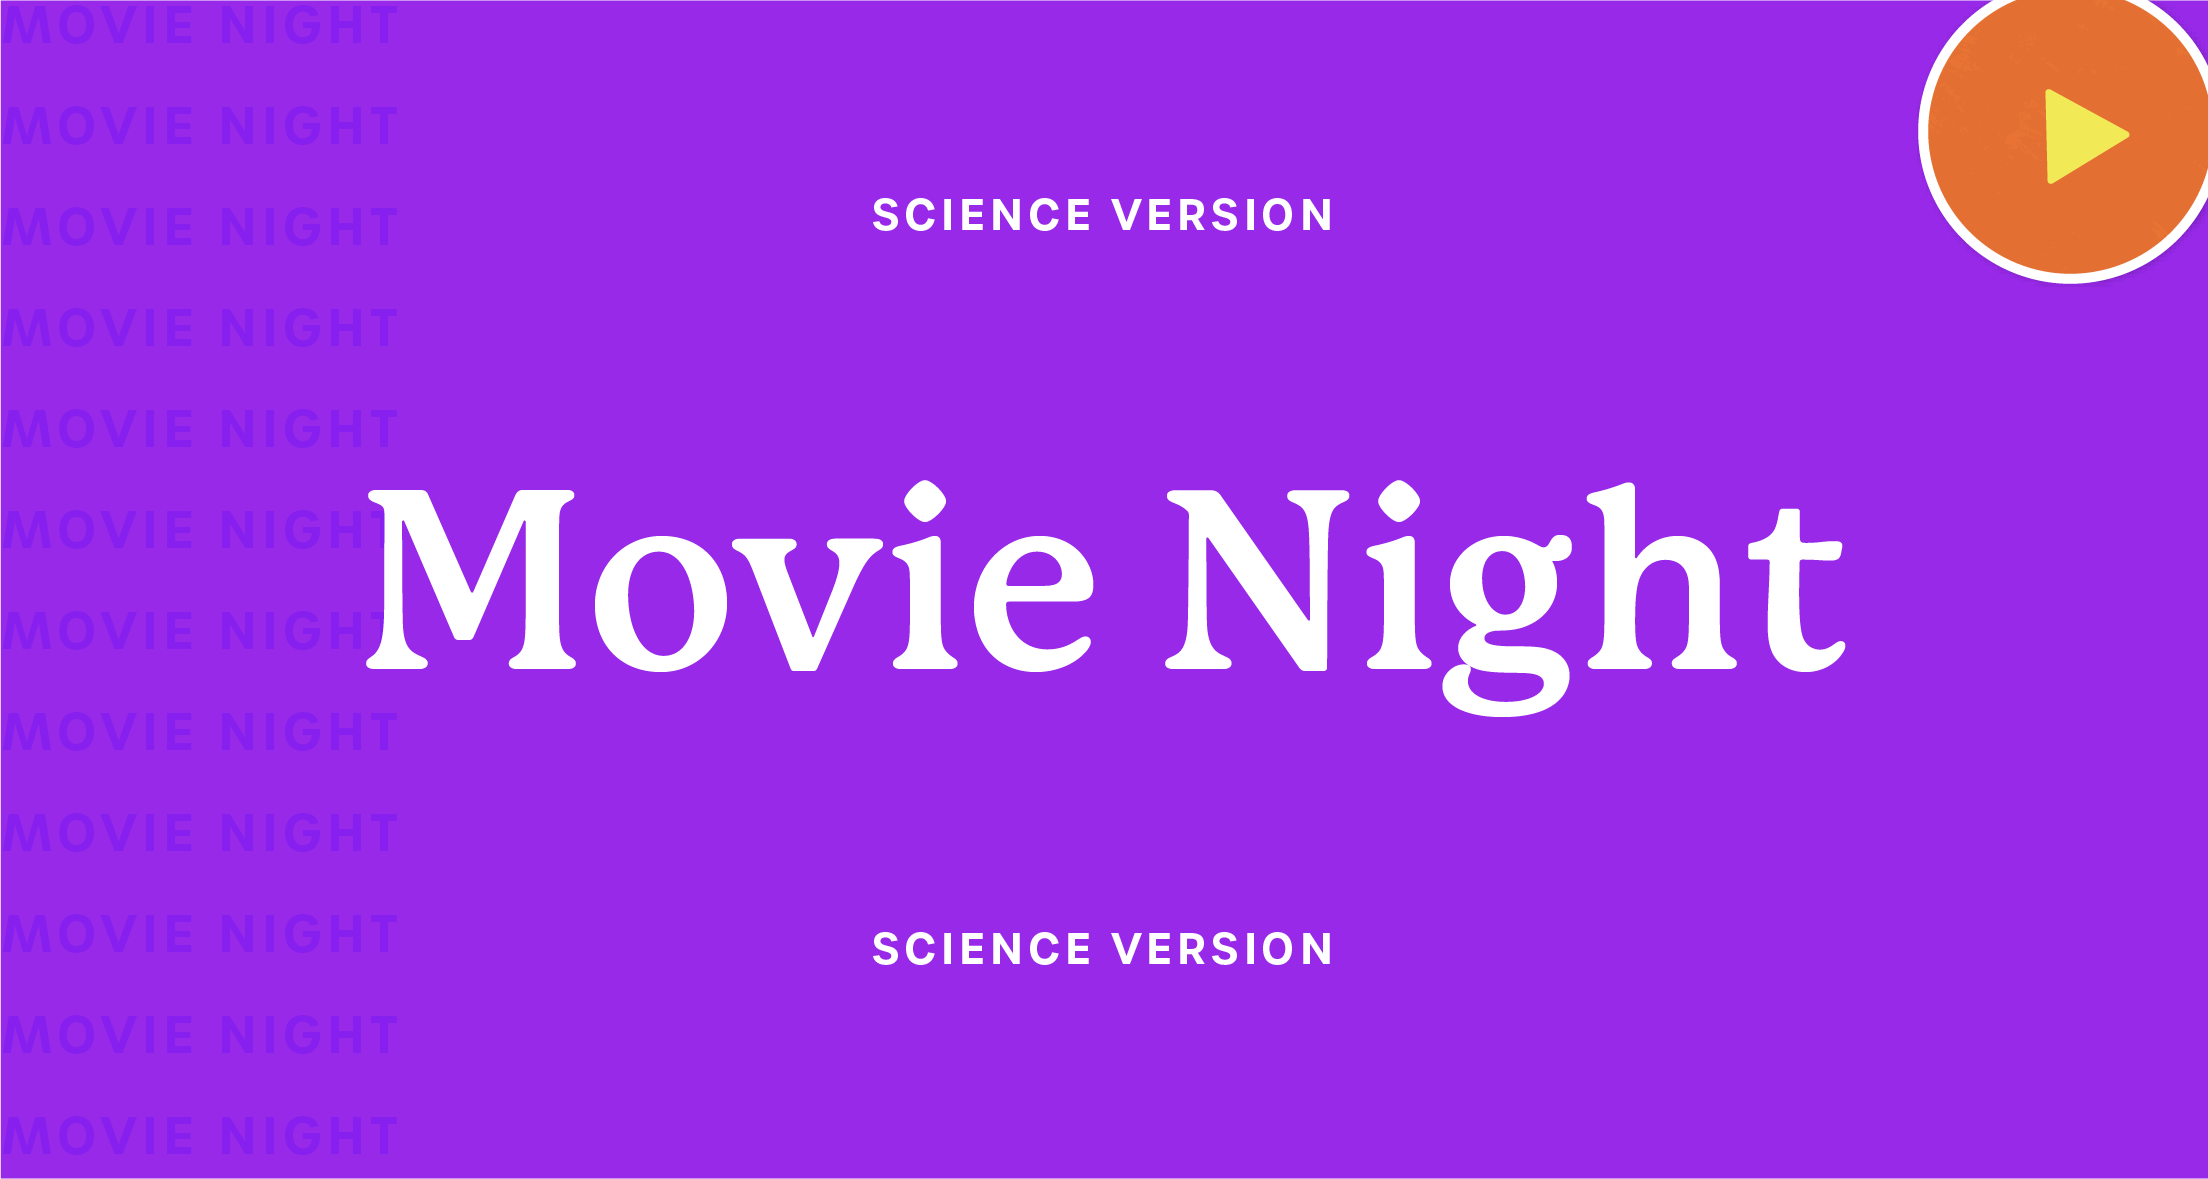 A violet graphic that says 'Movie Night: Science Version'